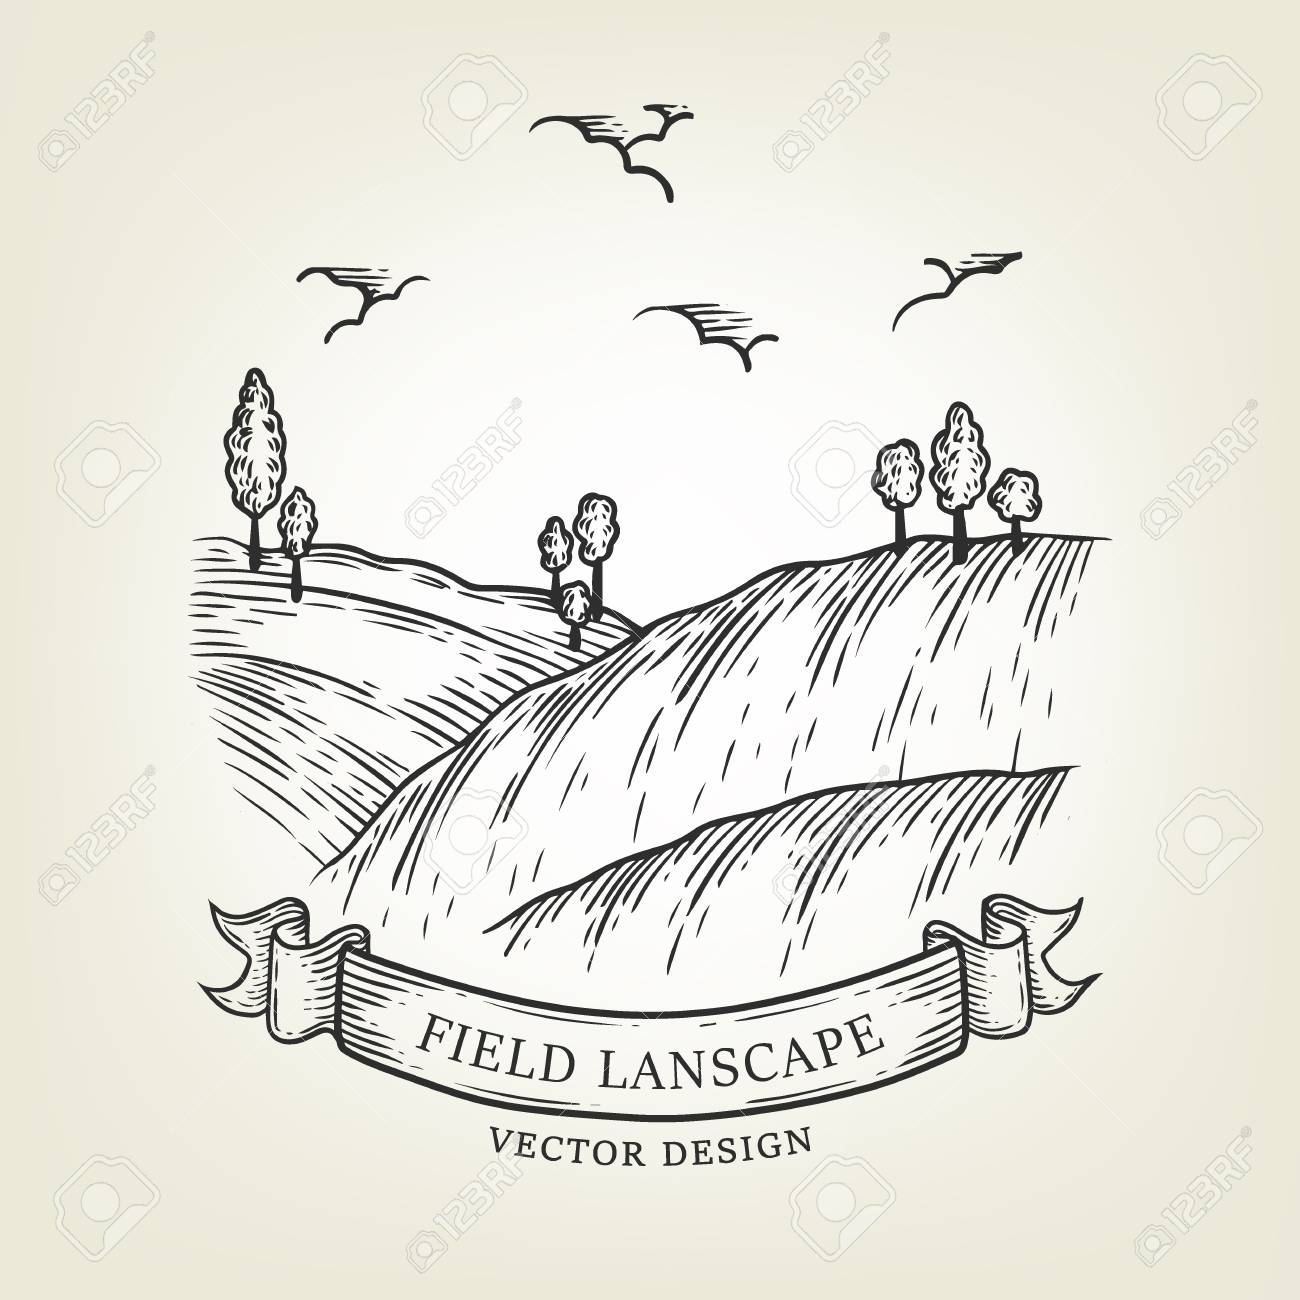 1300x1300 Sketch Of Field Landscape With Hills And Trees. Vector